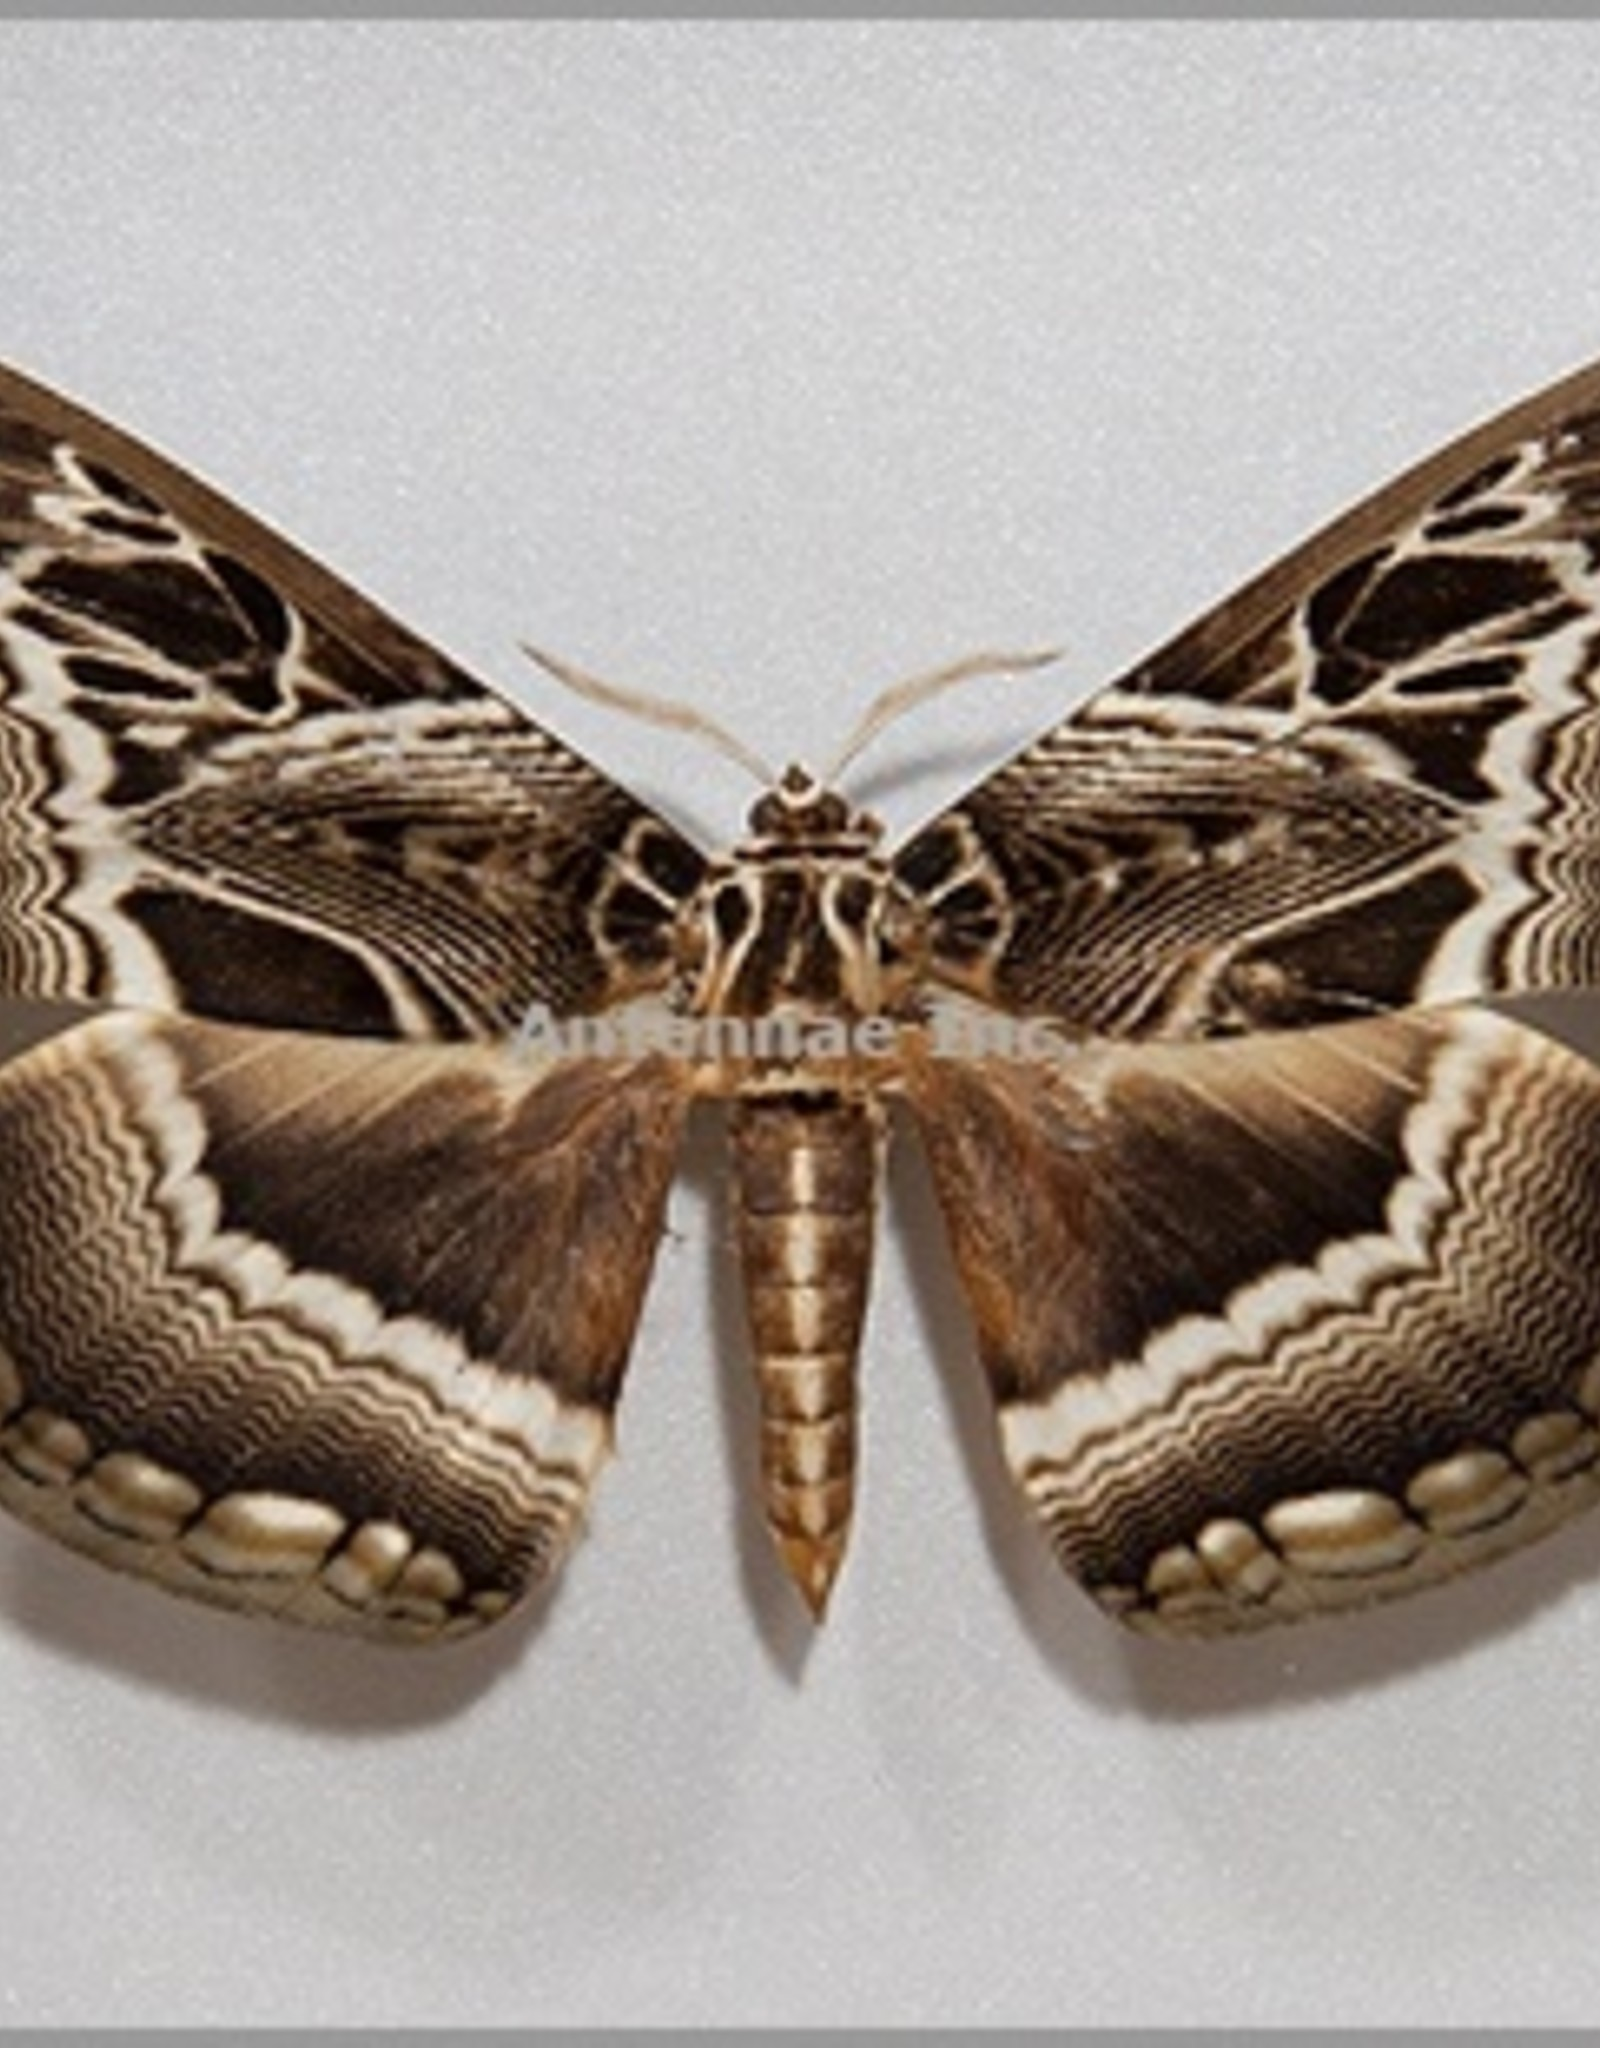 Dactylocerus lucina M A1- Cameroon